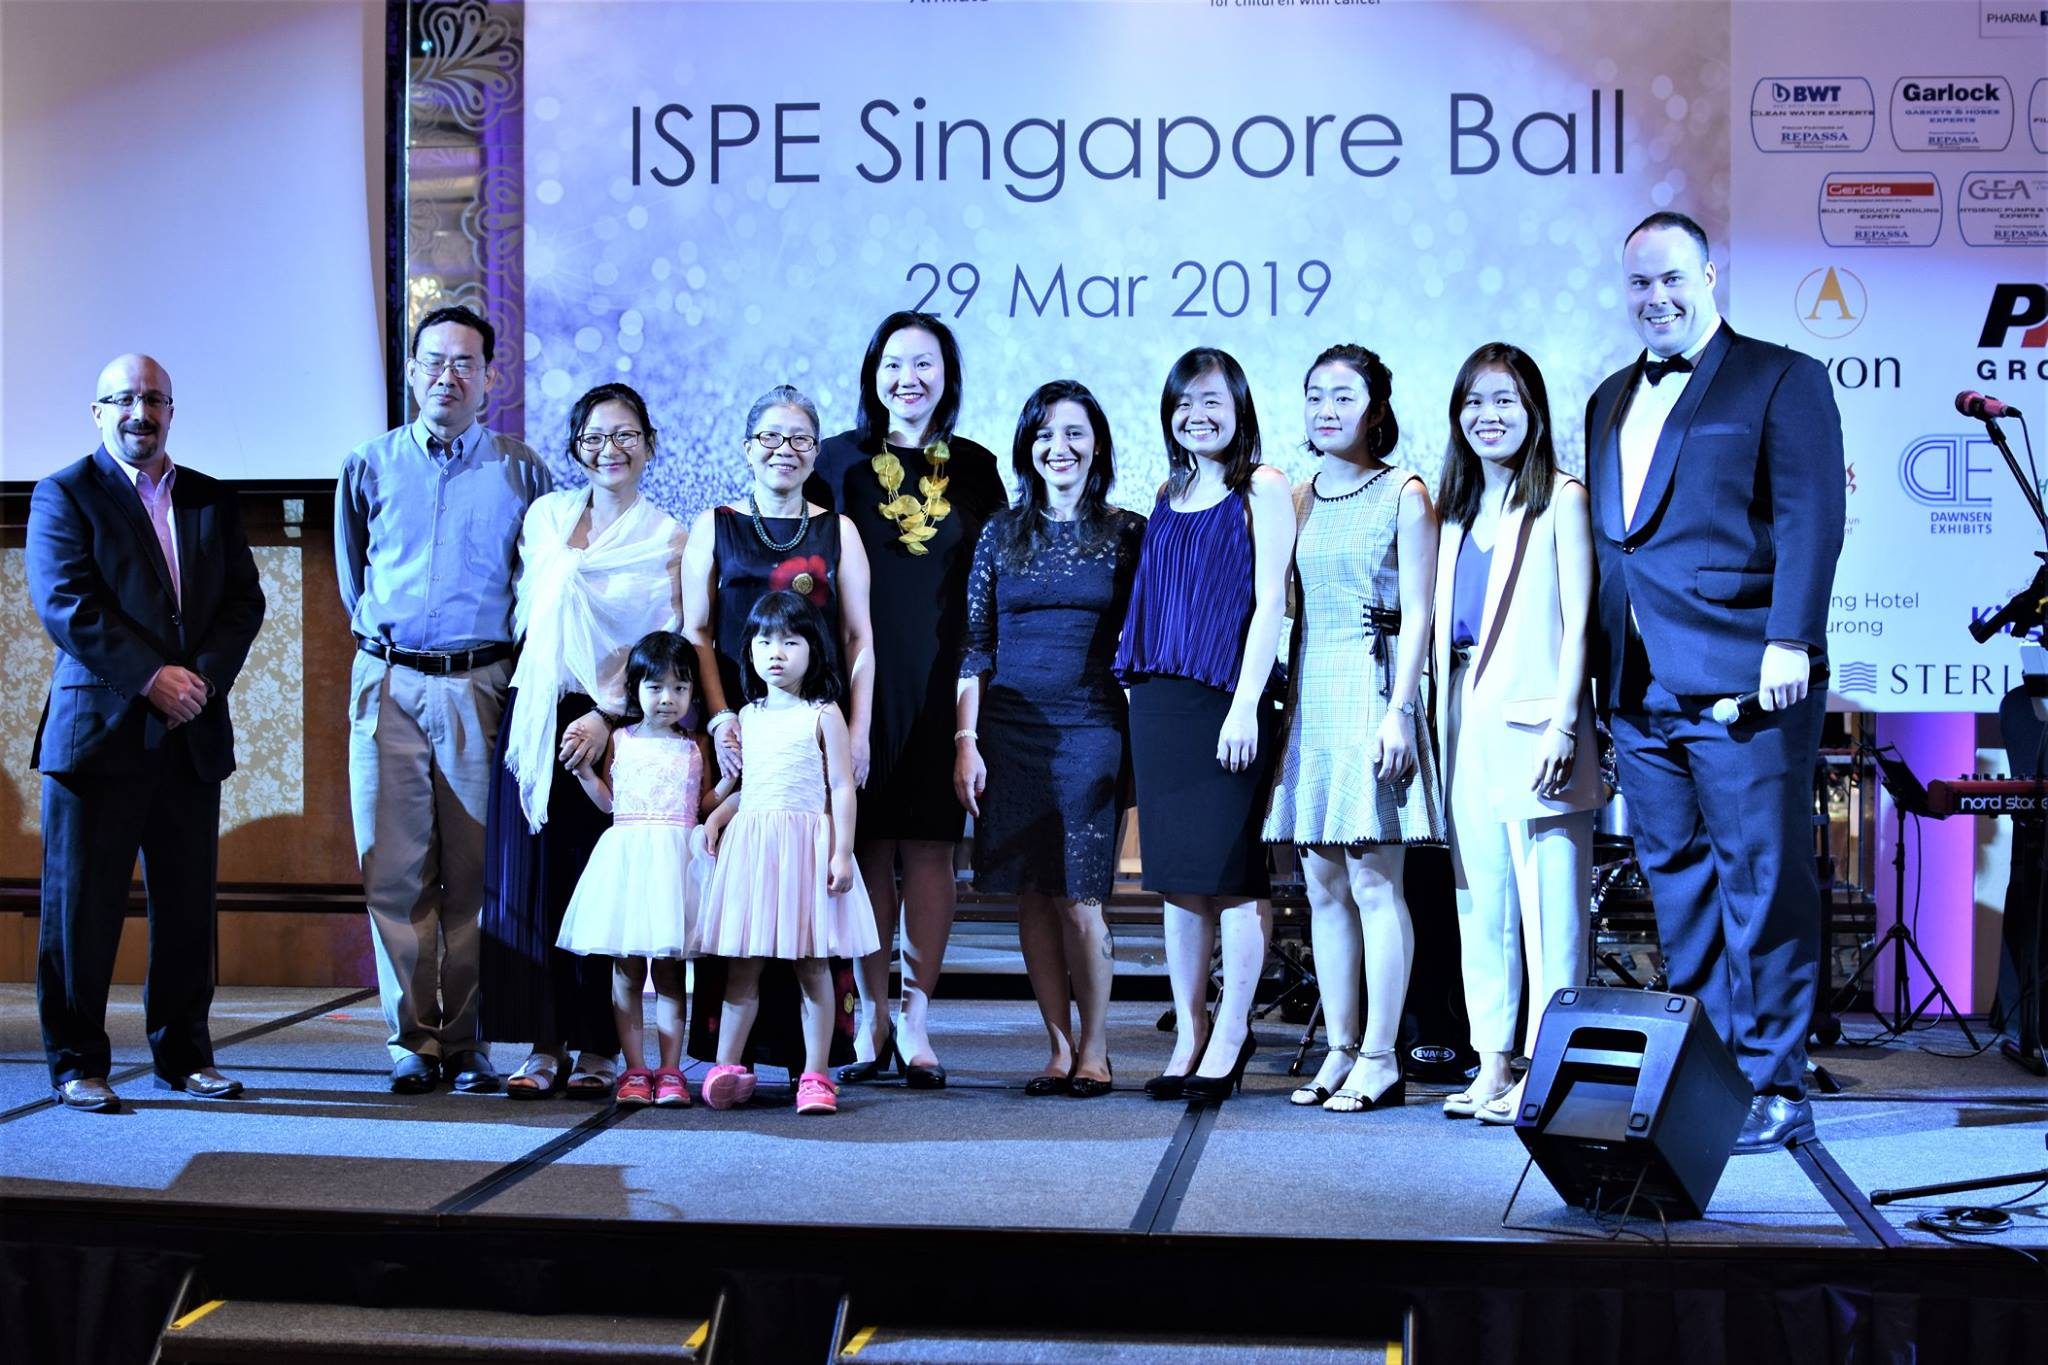 ISPE Singapore Ball in aid of VIVA